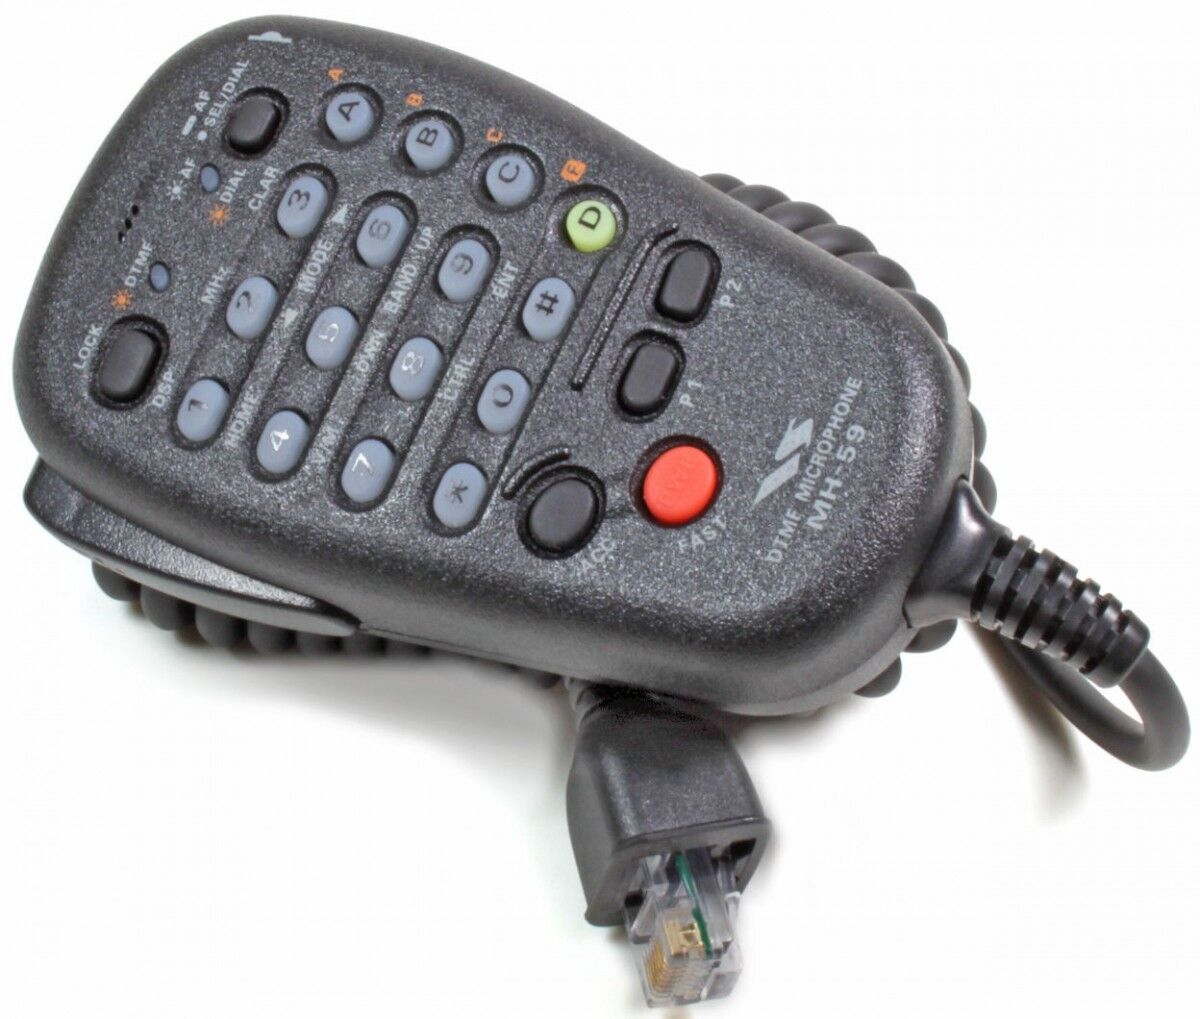 Yaesu MH-59A8J Remote Control Mic - For FT-897D & FT-857D - USA Yaesu Dealer!. Available Now for 89.34